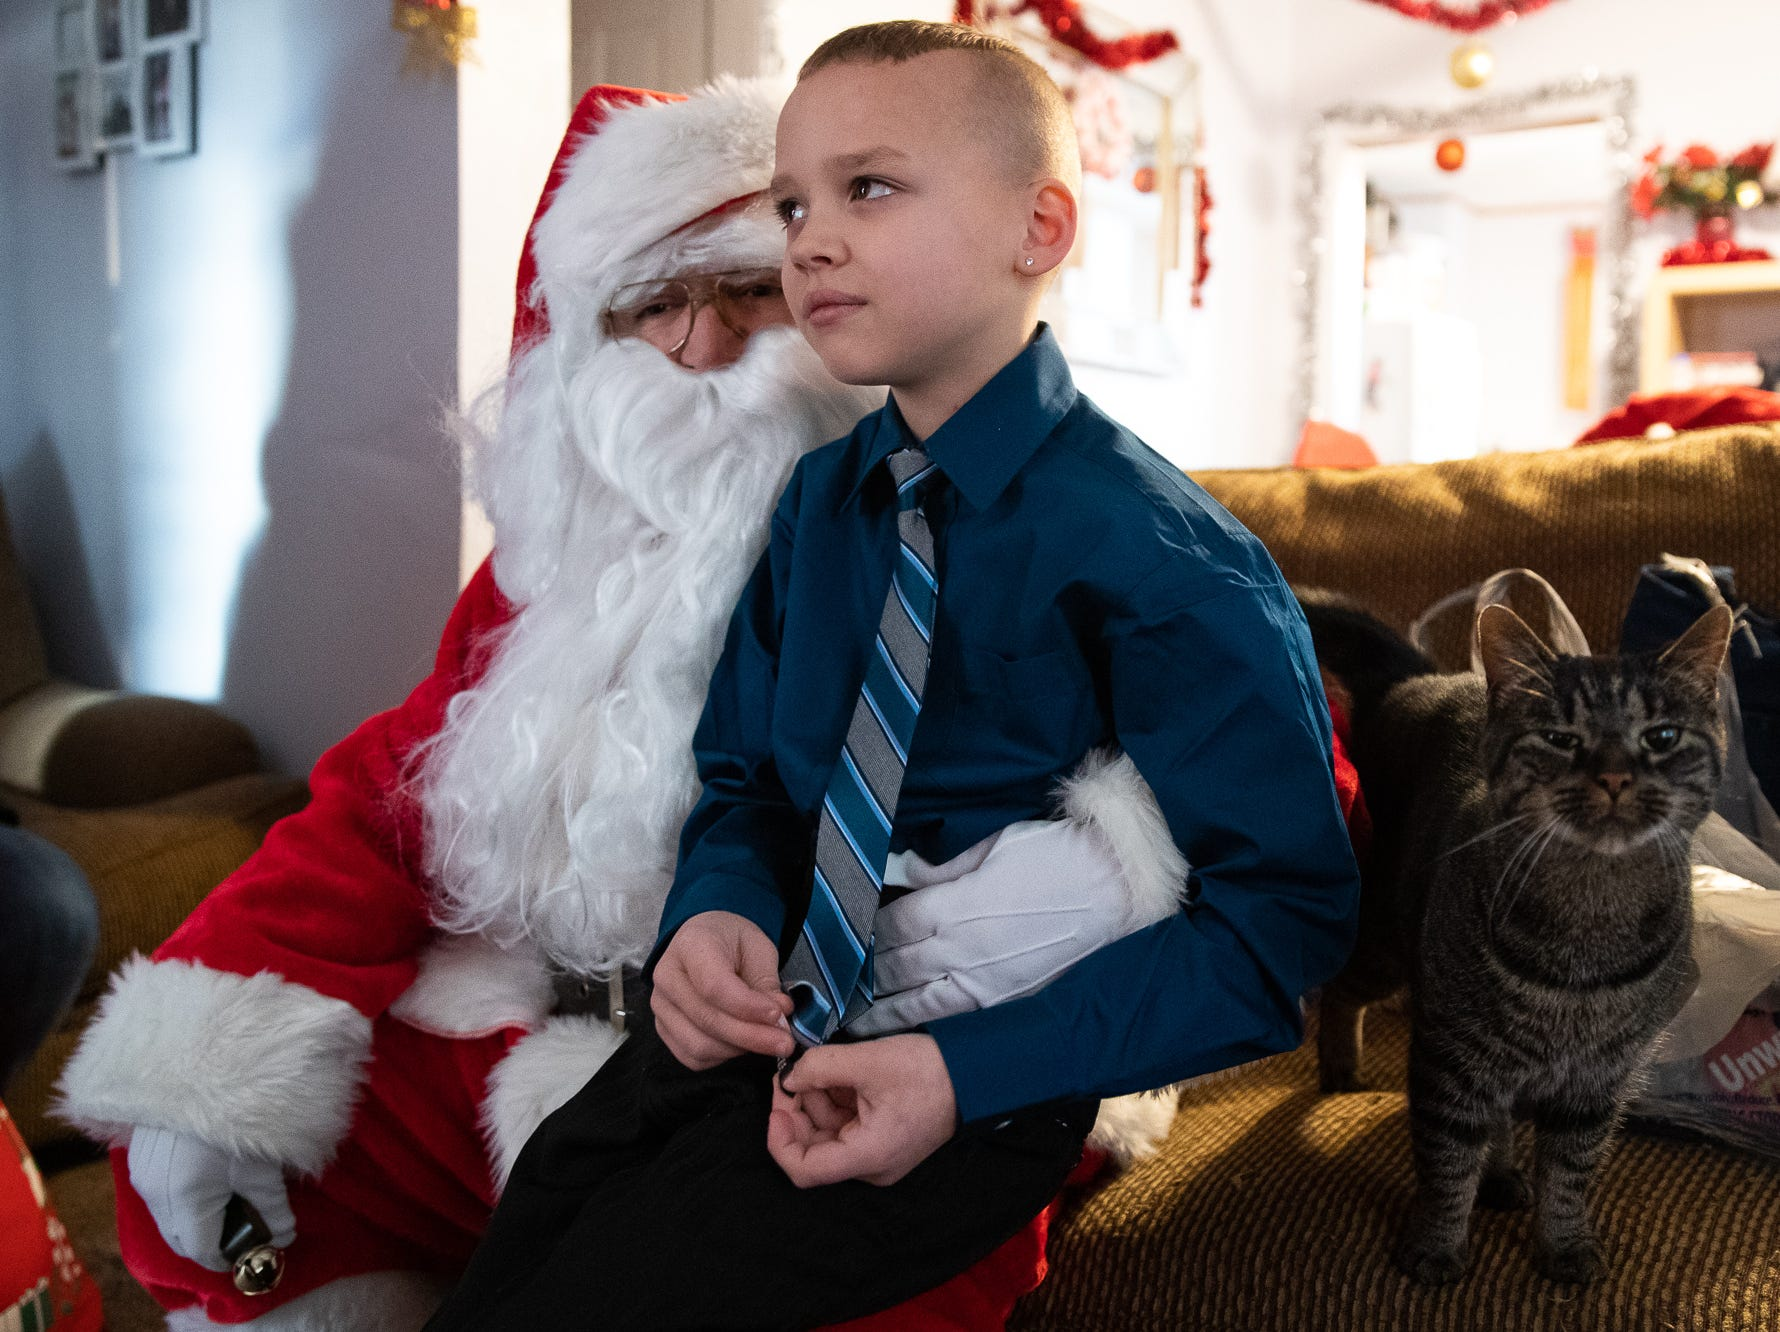 Isaiah, 8, sits on the lap of Santa, played by firefighter Wayne Reid, during the S.A.V.E.S Project Santa, Saturday, Dec. 22, 2018, in McSherrystown Borough. The S.A.V.E.S Project Santa donated food, toys, and clothing to 12 local families in need.